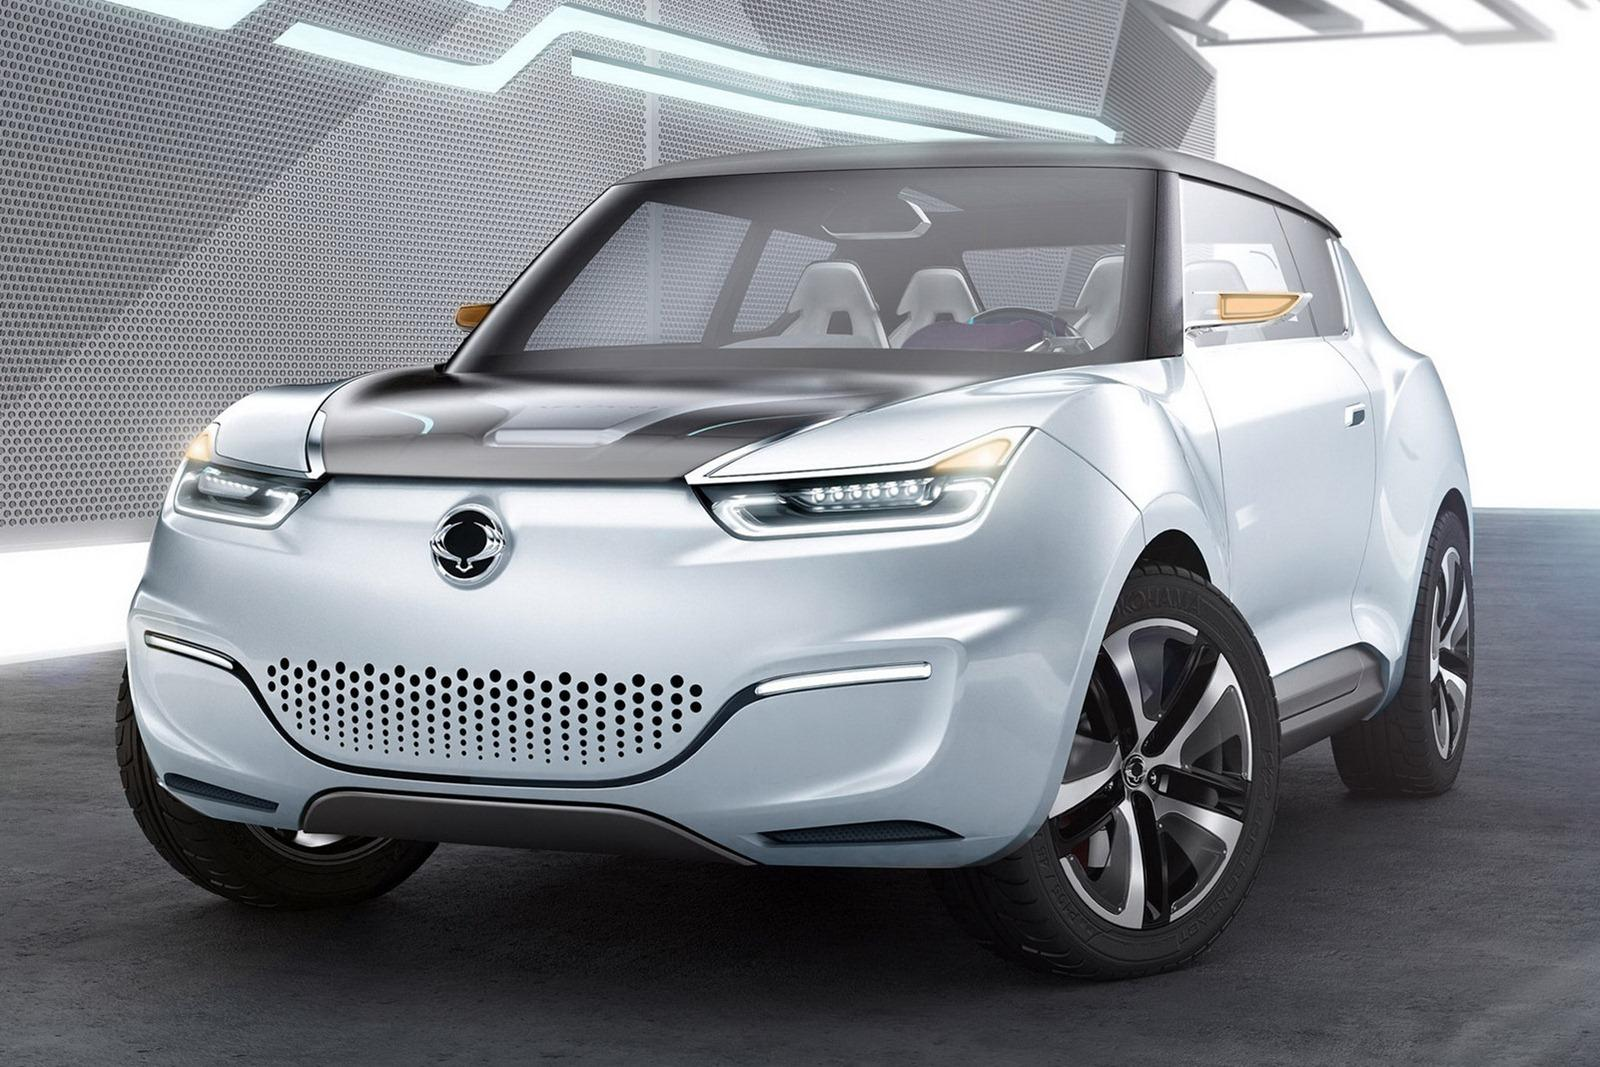 2014 SsangYong E XIV Concept 2014 SsangYong E XIV Concept to debut at the Paris Motor Show